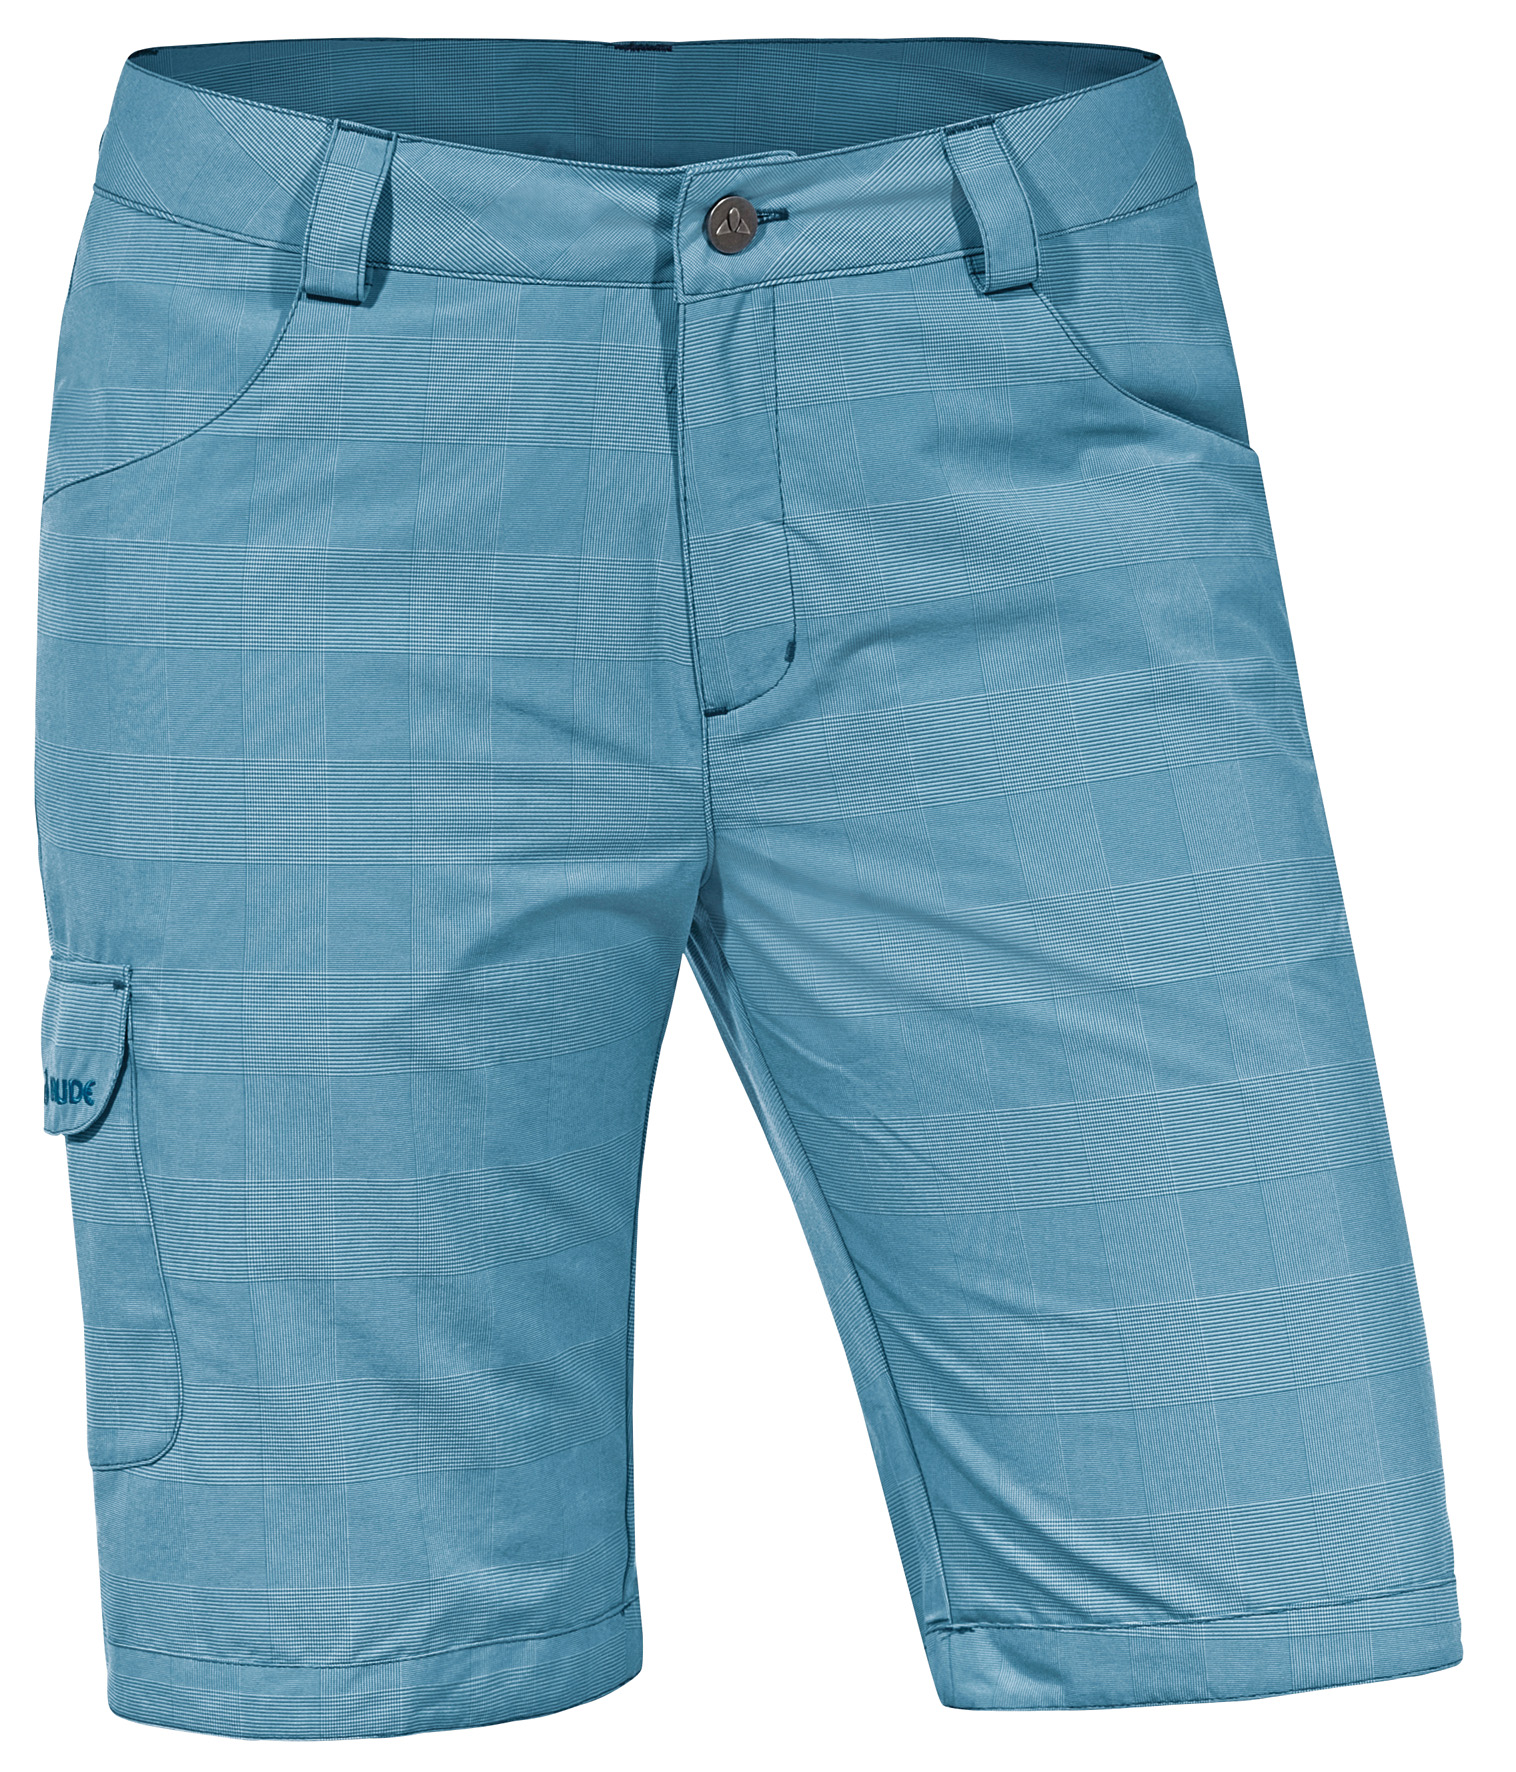 Women´s Taguna Shorts II teal blue Größe 36 - schneider-sports